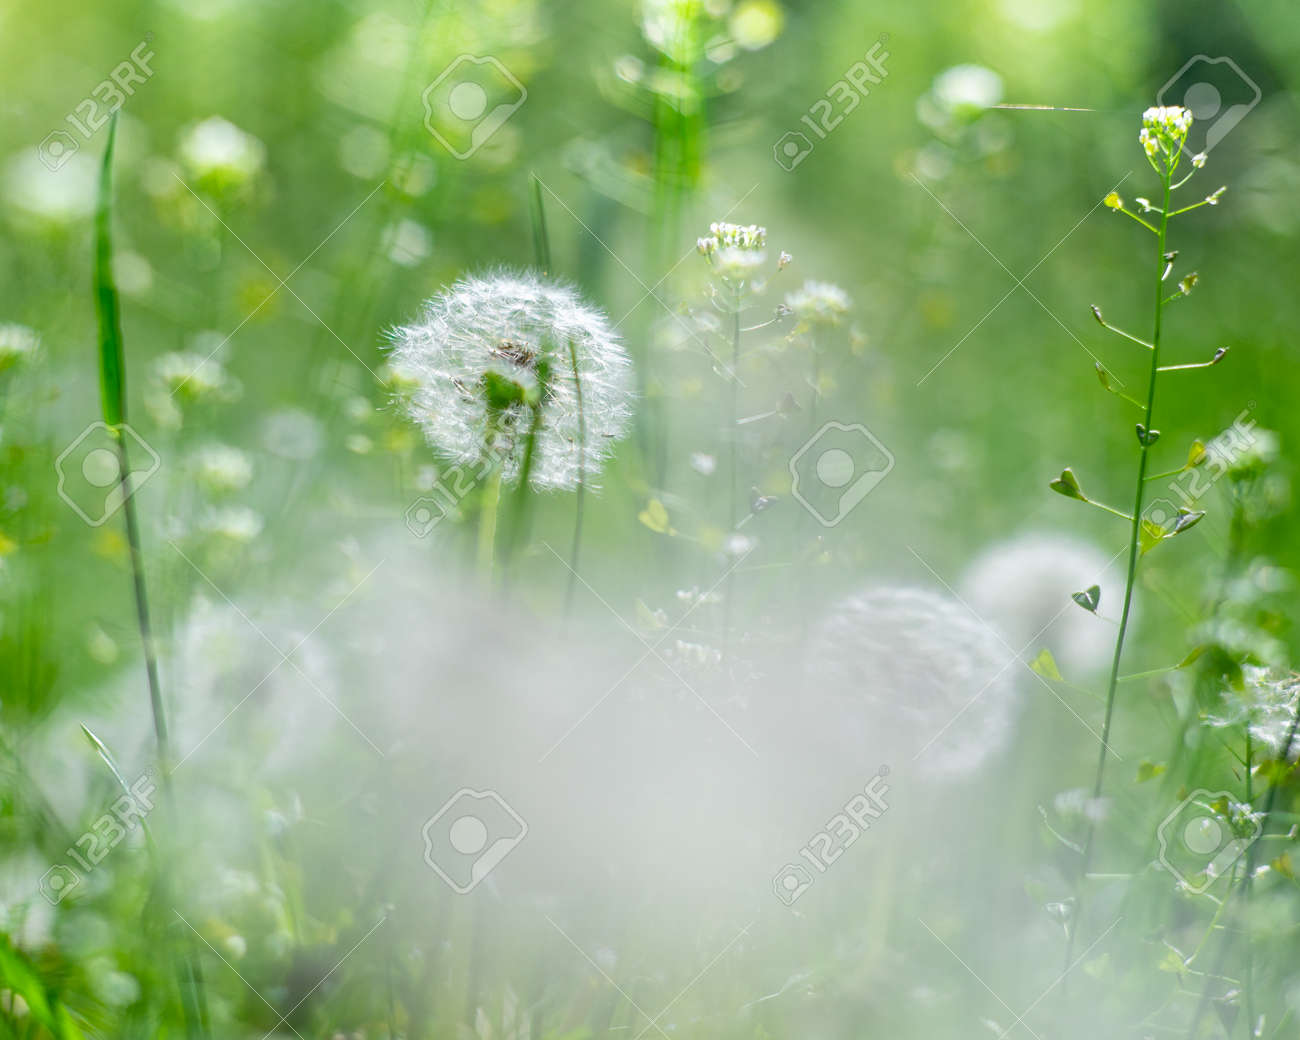 Dandelion meadow. Seasonal natural backgrounds with shallow depth of field - 159256700